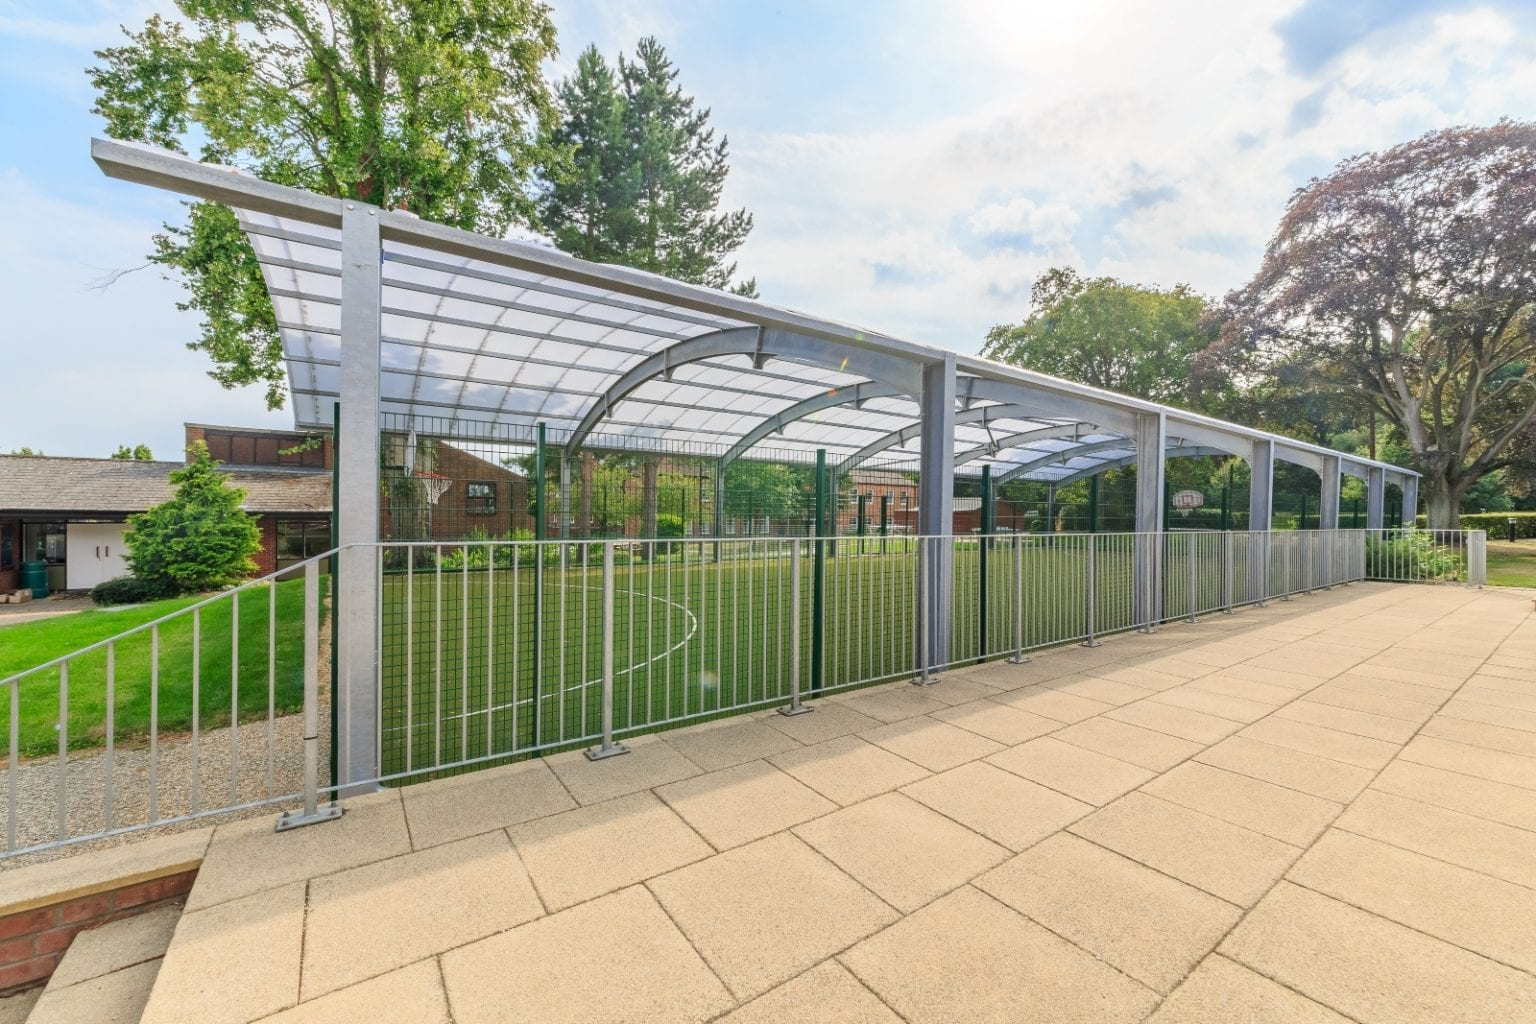 Covered MUGA Fence at Haileybury College